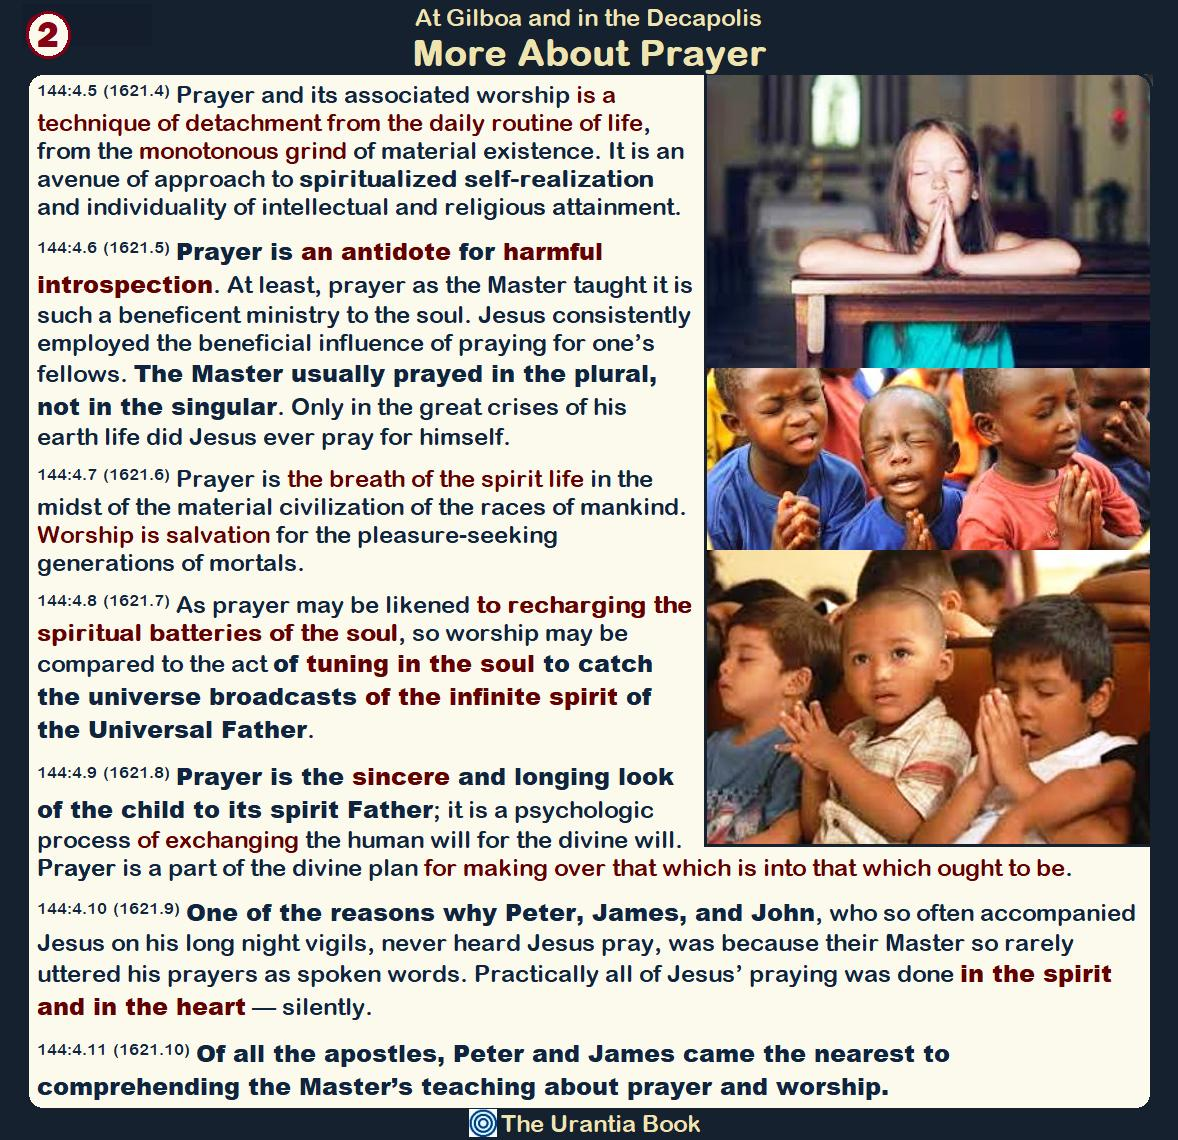 """More About #Prayer """"Prayer and its associated #worship is a technique of detachment from the daily routine of #life, from the monotonous grind of material existence.  It is an avenue of approach to spiritualized self-realization and individuality of #intellectual... #JesusChrist"""